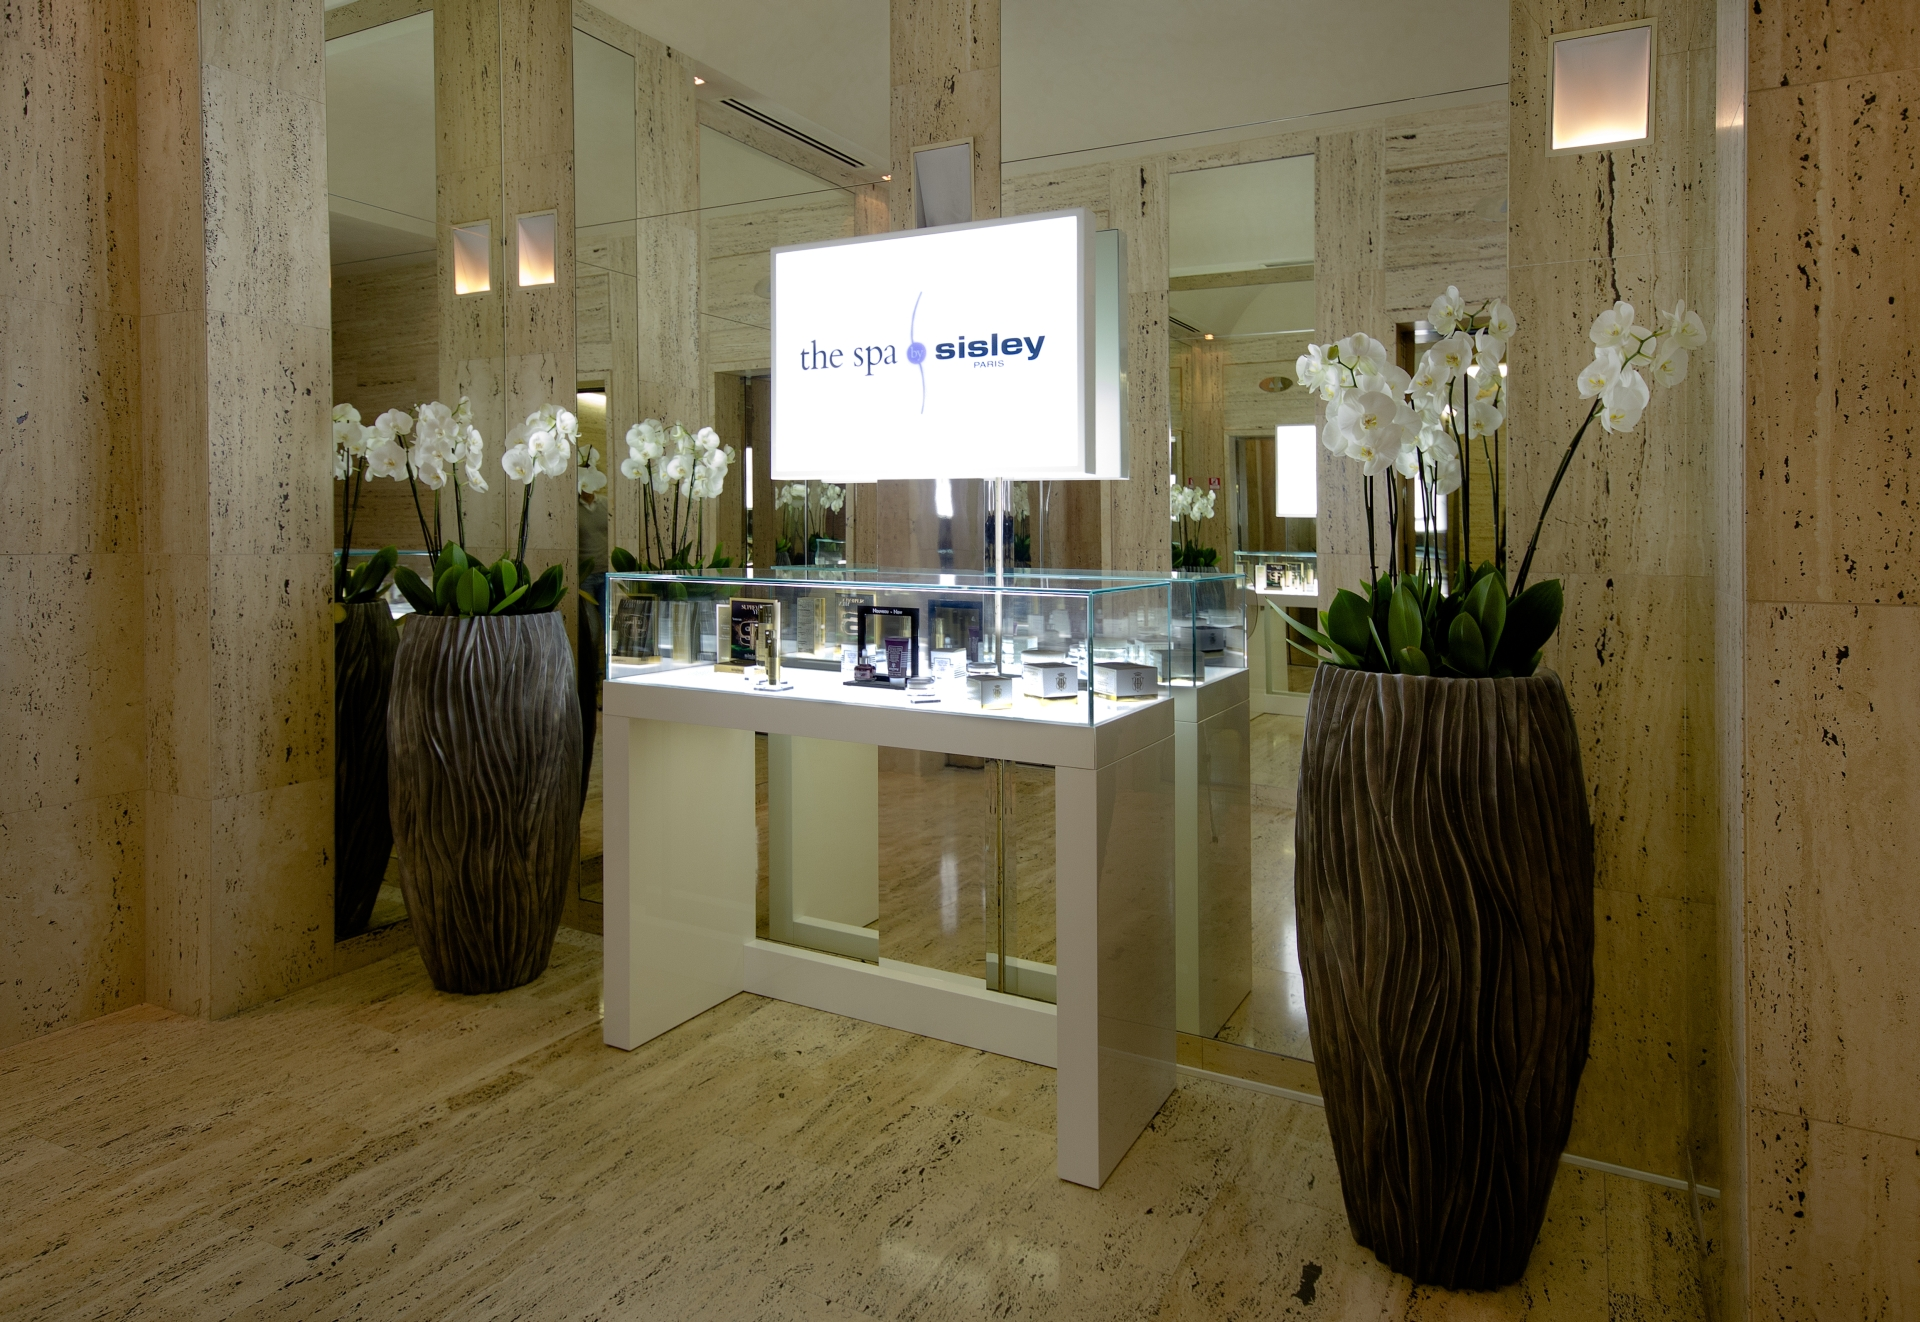 A SAN VALENTINO NELLE SPA BY SISLEY